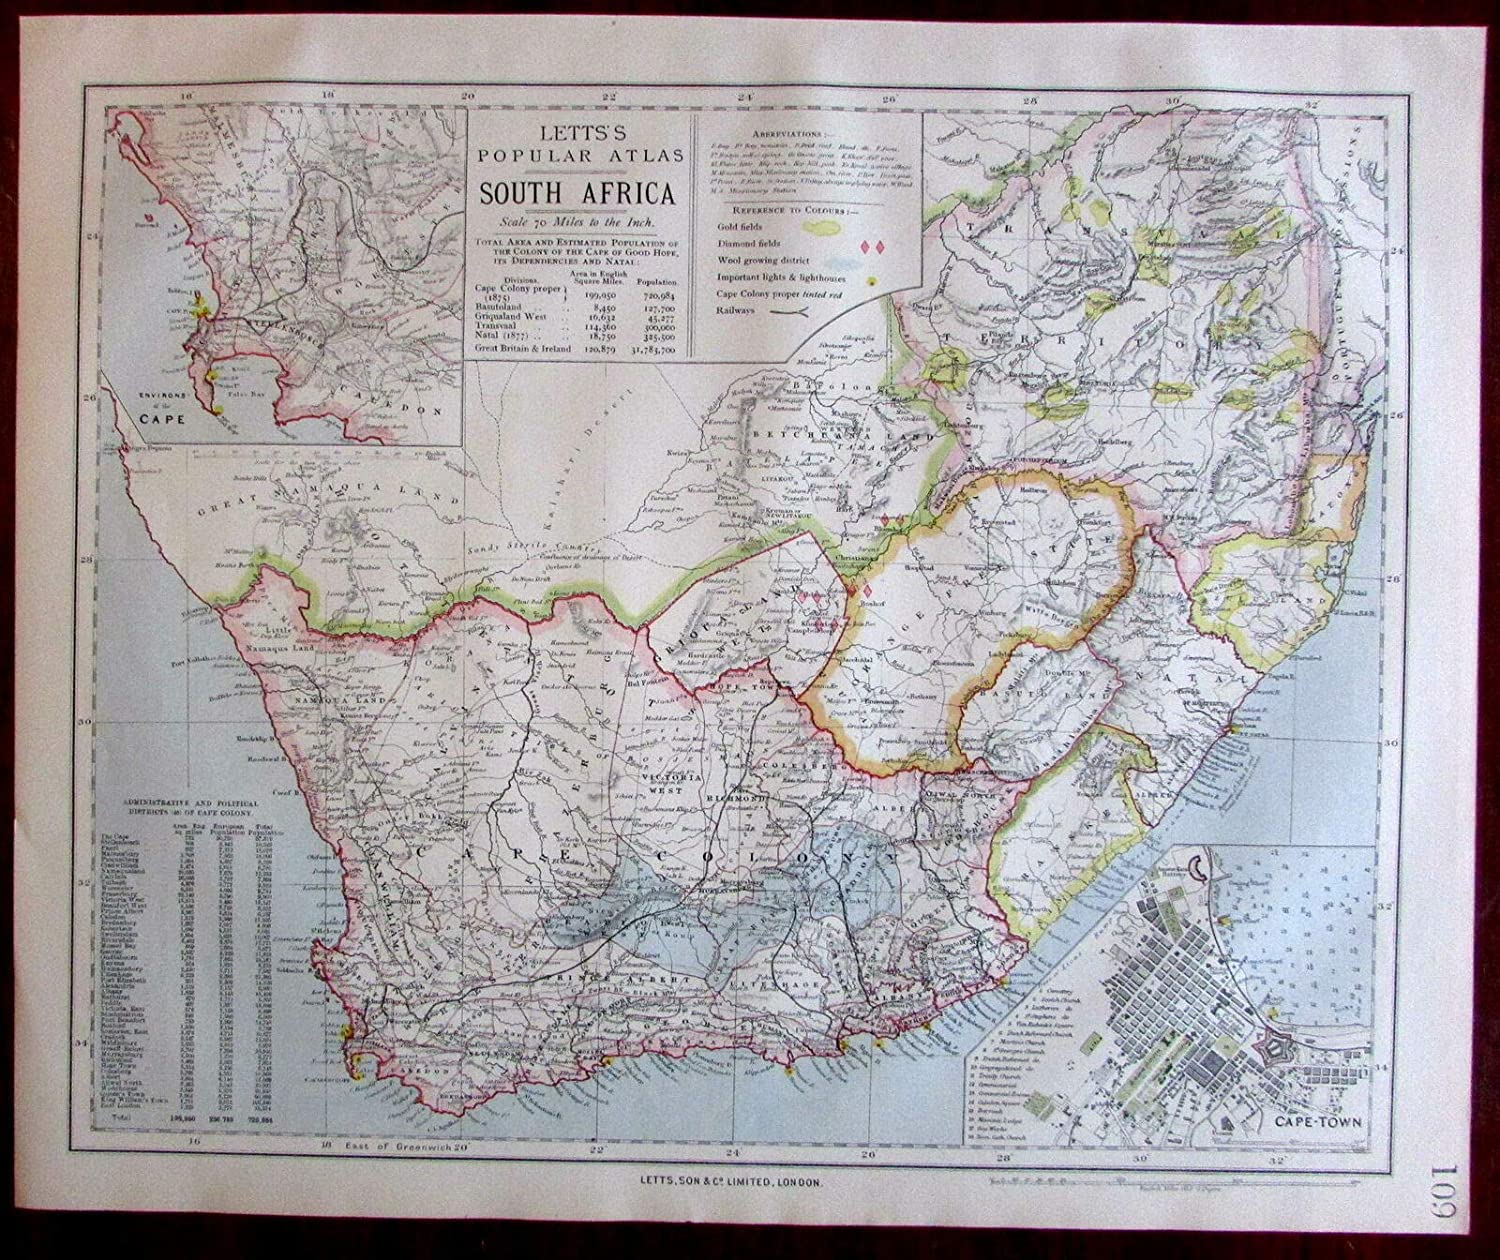 Old South Africa Map Amazon.com: South Africa w/Cape Town city plan inset 1883 Lett's